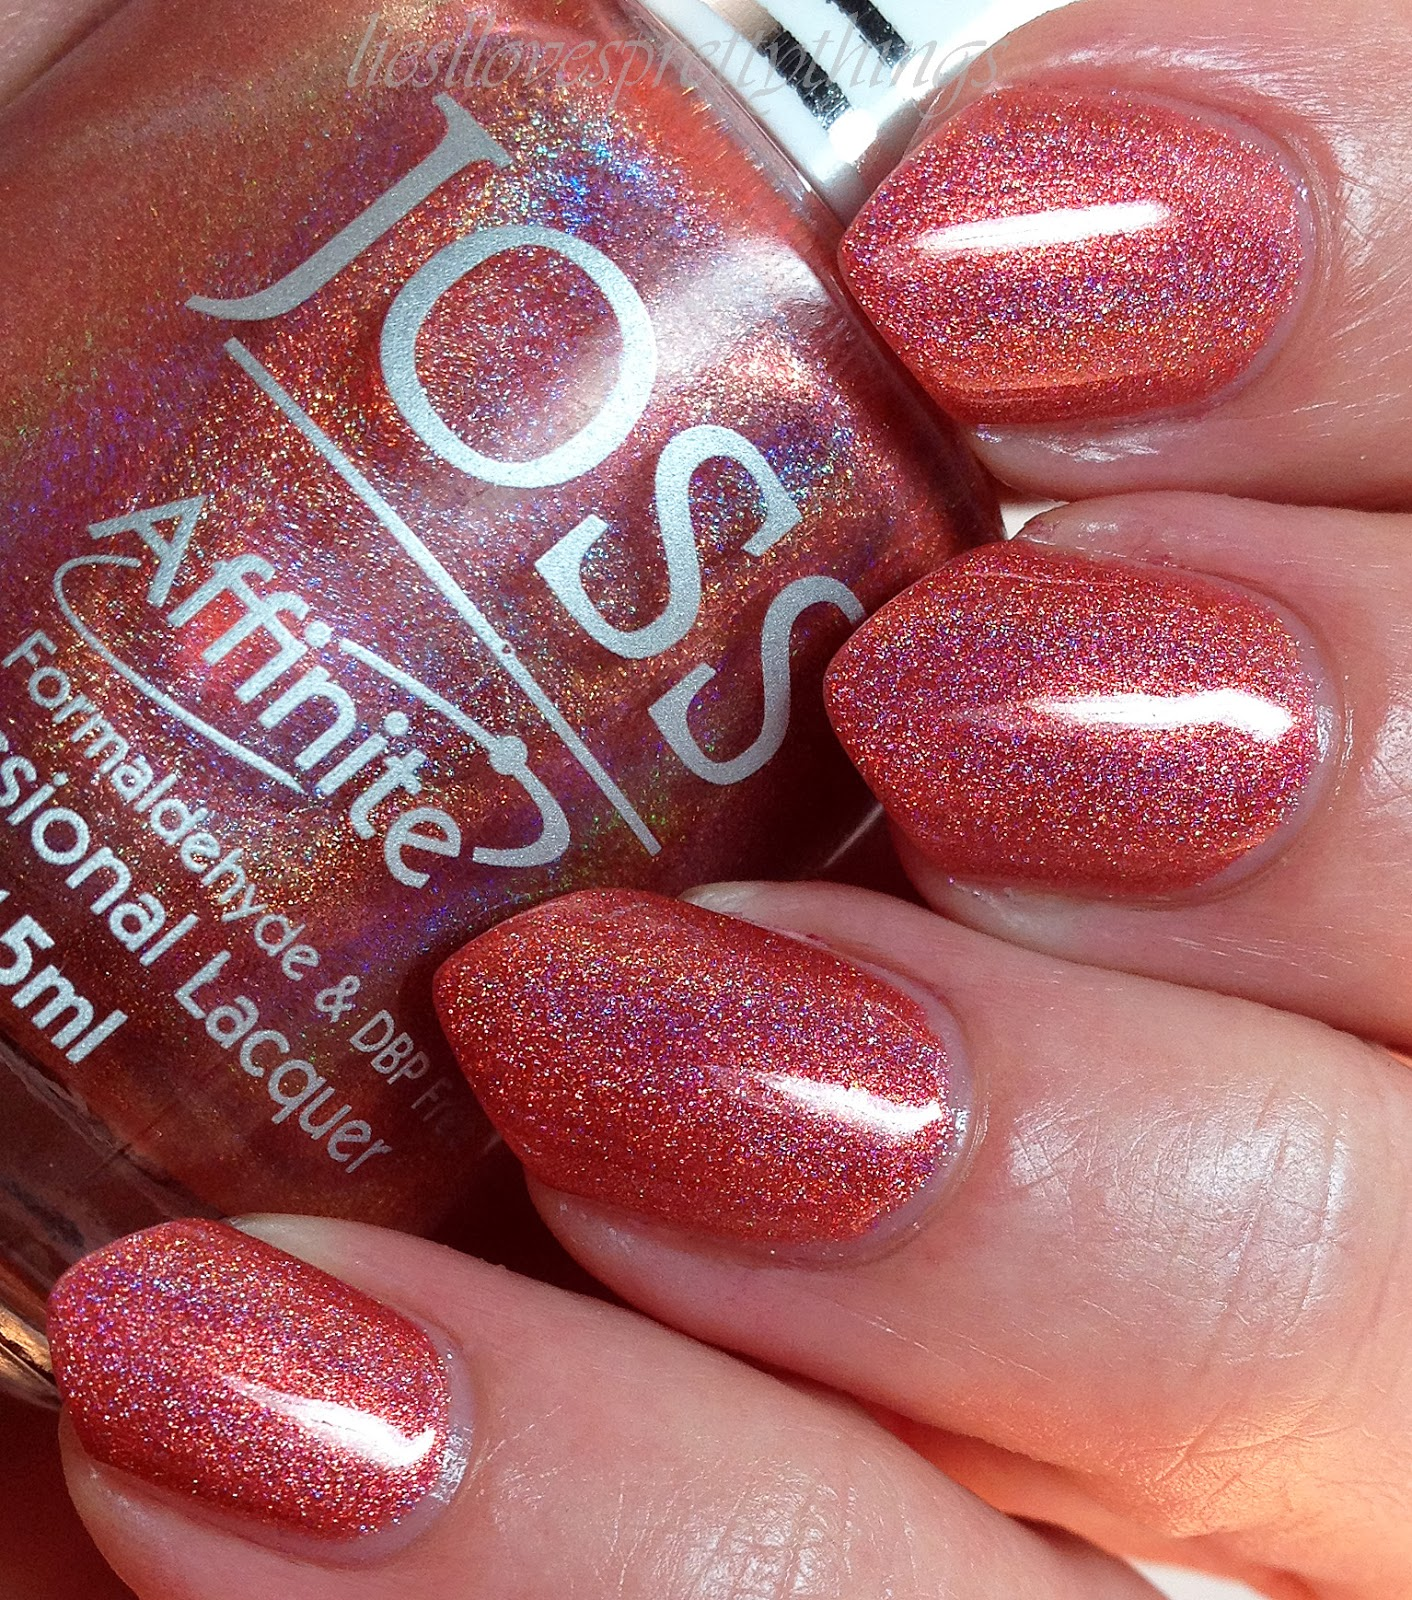 Joss Alternate Dimension swatch and review